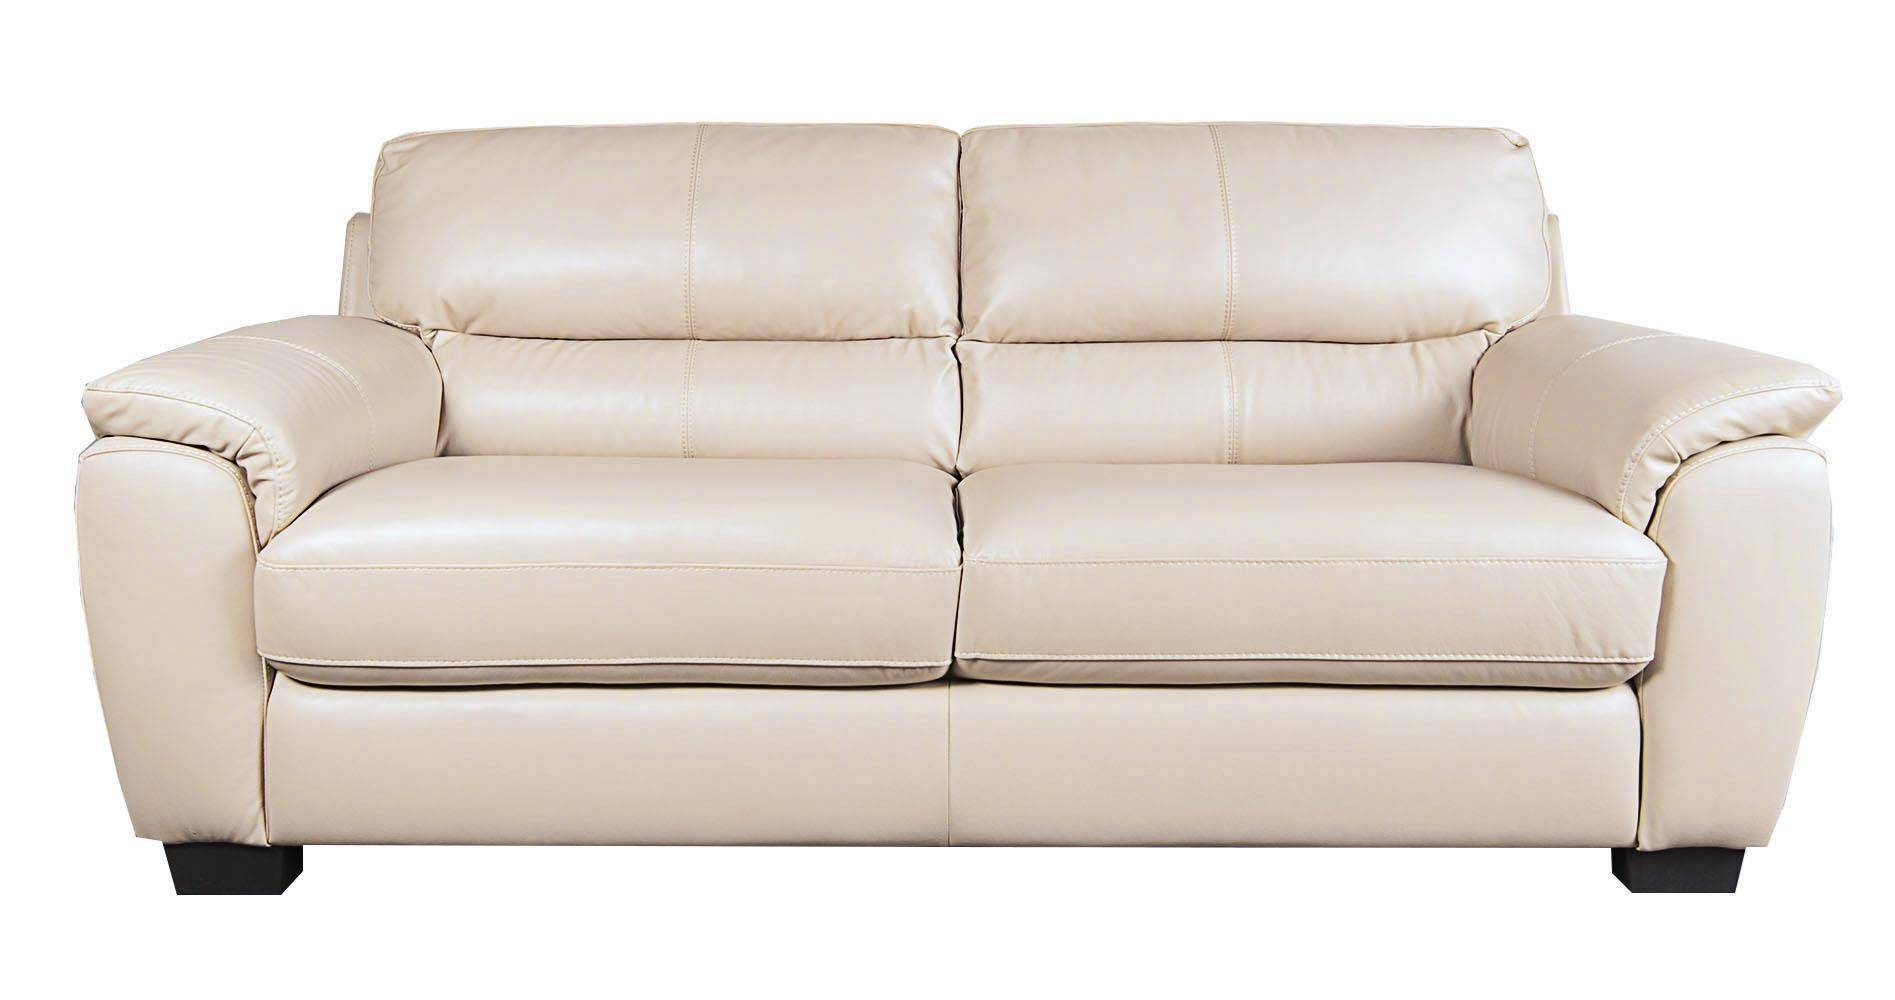 Leather Sofas | Dayton, Cincinnati, Columbus, Ohio Leather Sofas Intended For Sofas Cincinnati (View 11 of 25)